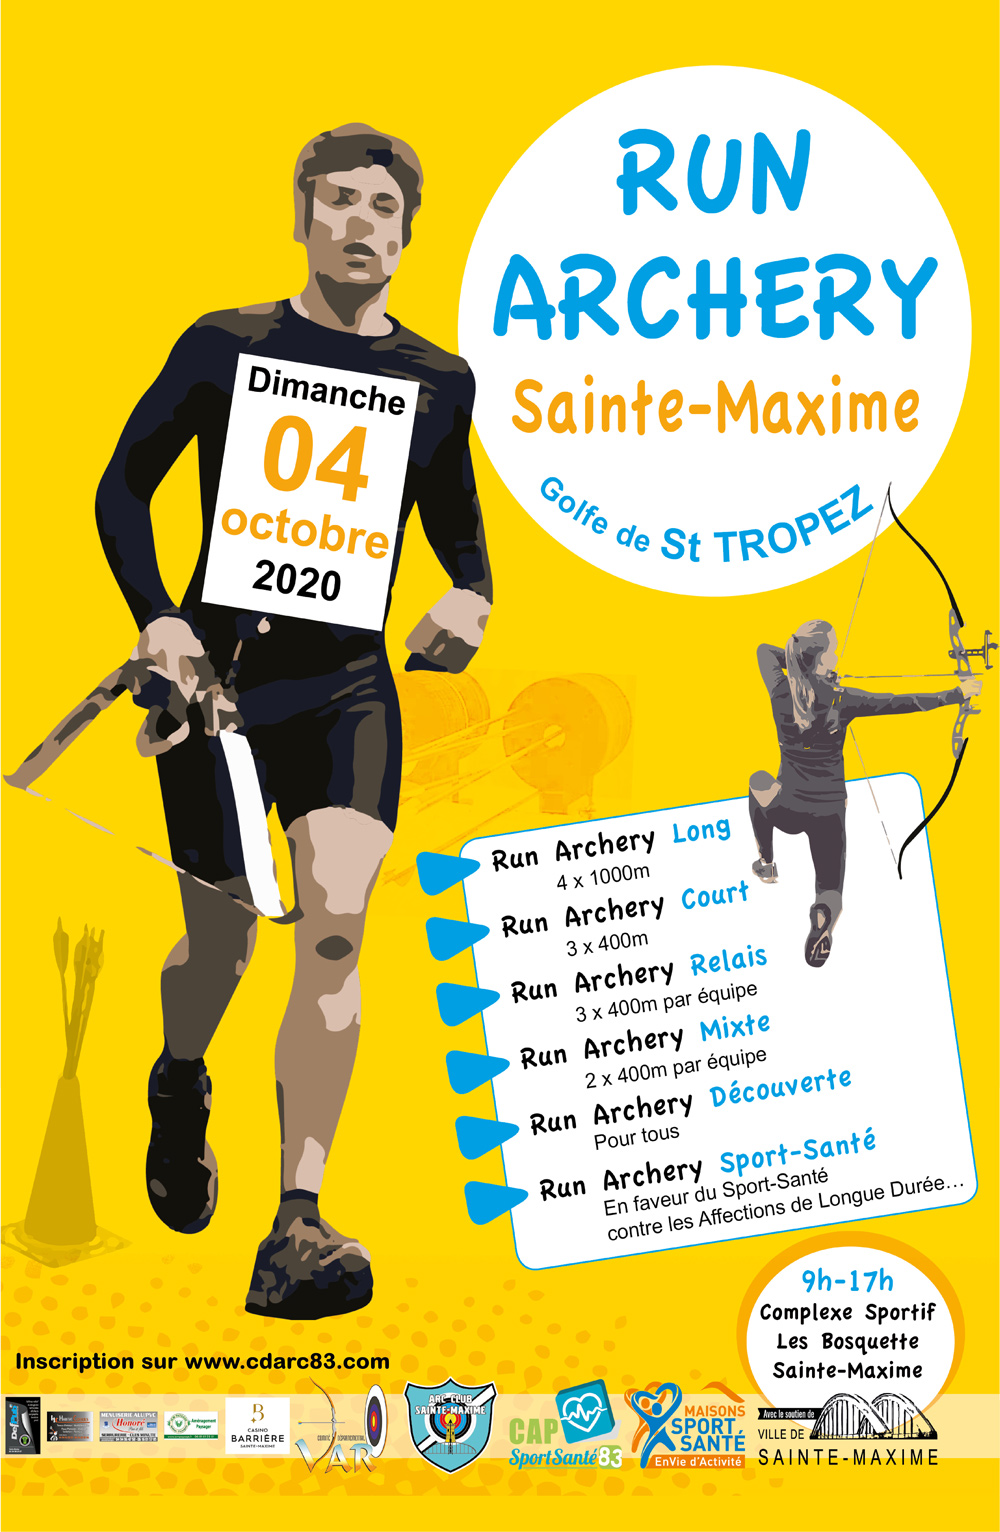 https://www.cdarc83.com/images/runarchery/run-archery-ste-maxime-4-octobre-2020.jpg